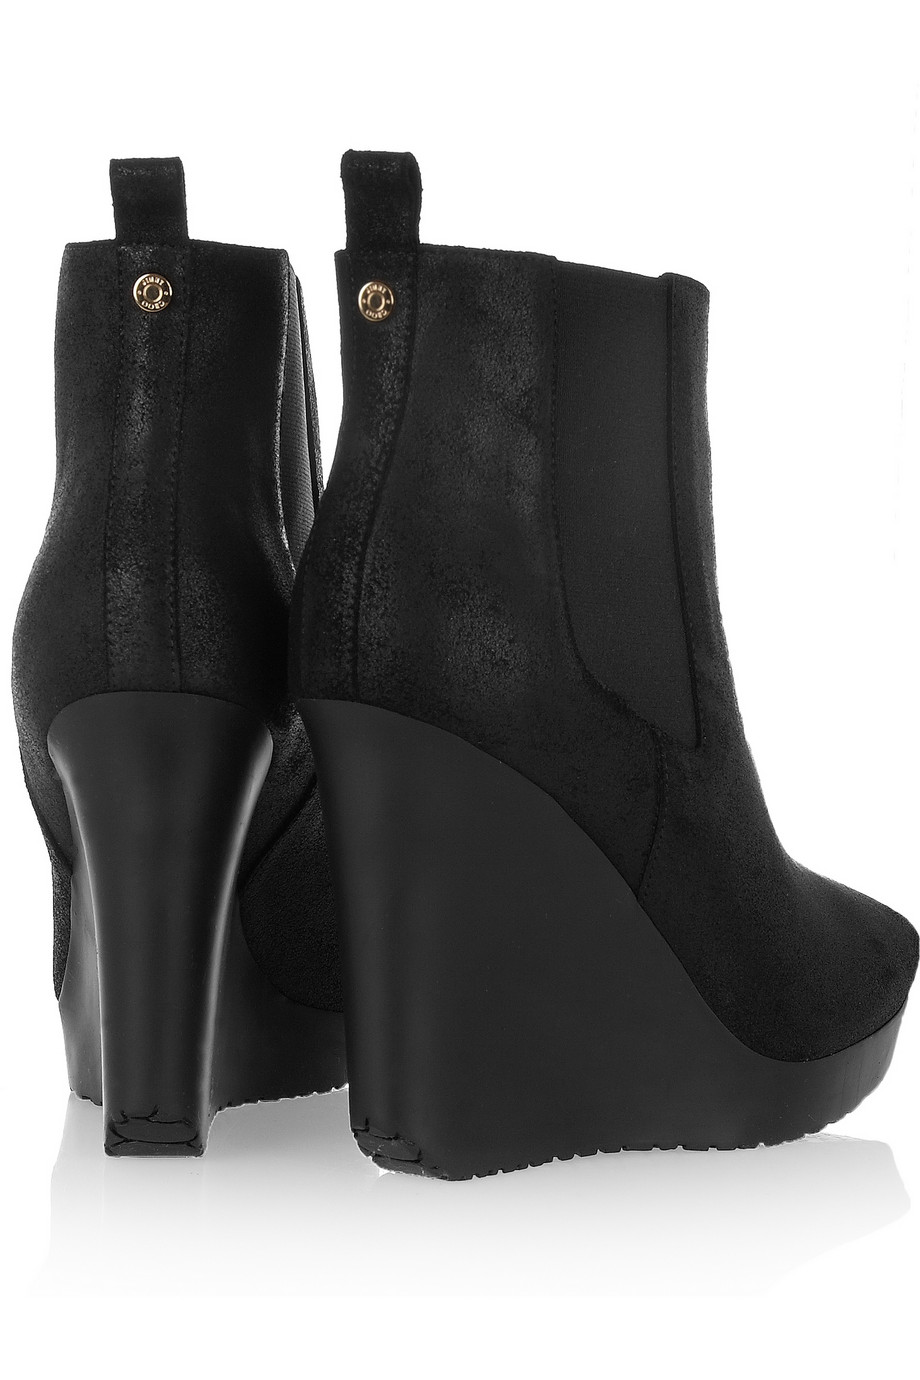 Jimmy Choo Distressed Ankle Boots outlet from china eymBn7syl